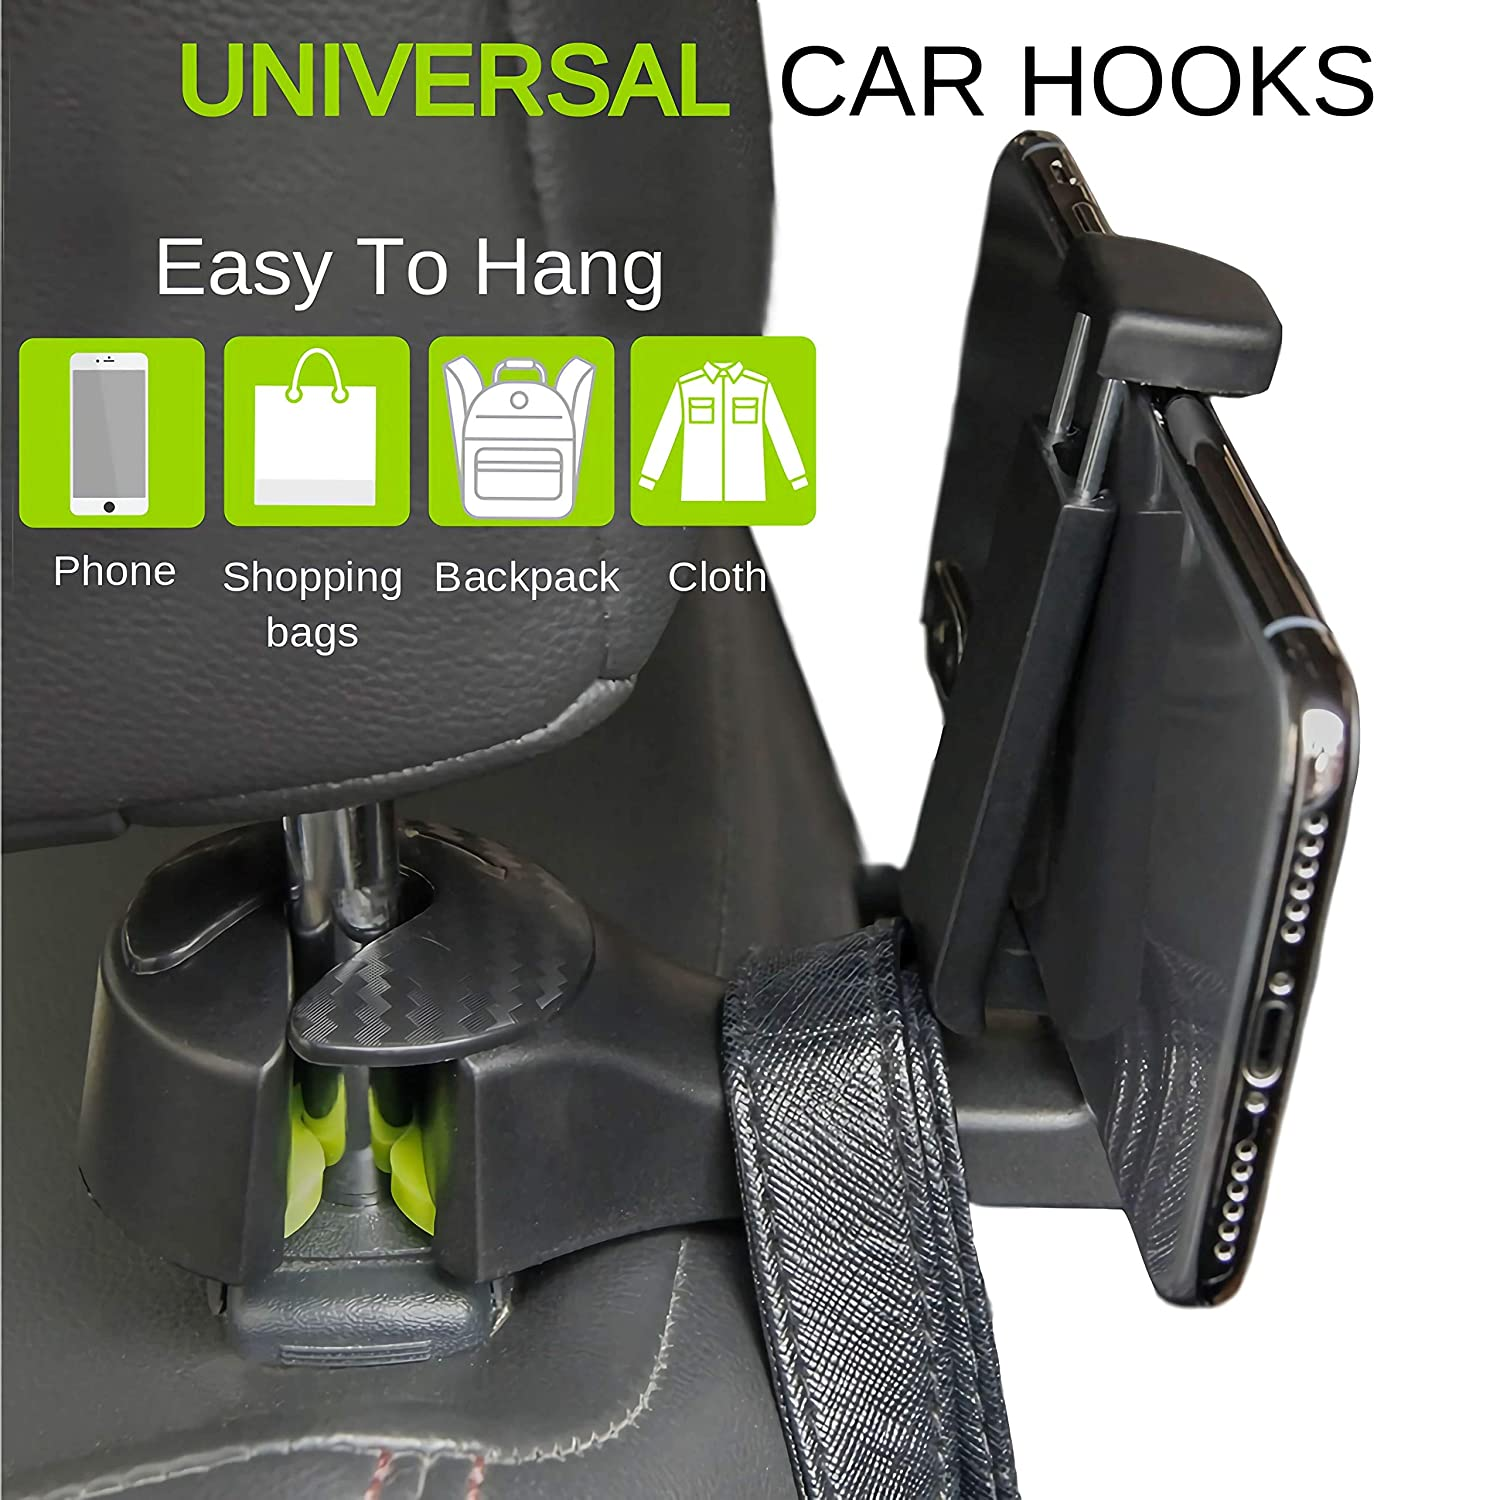 Grocery Shopping Bags Universal Vehicle Car Seat Hooks Cloth YIQI Car Hooks Car Seat Headrest Hook with Phone Holder 2 Pack Updated Car Lock Hooks Hanger for Handbags Purse